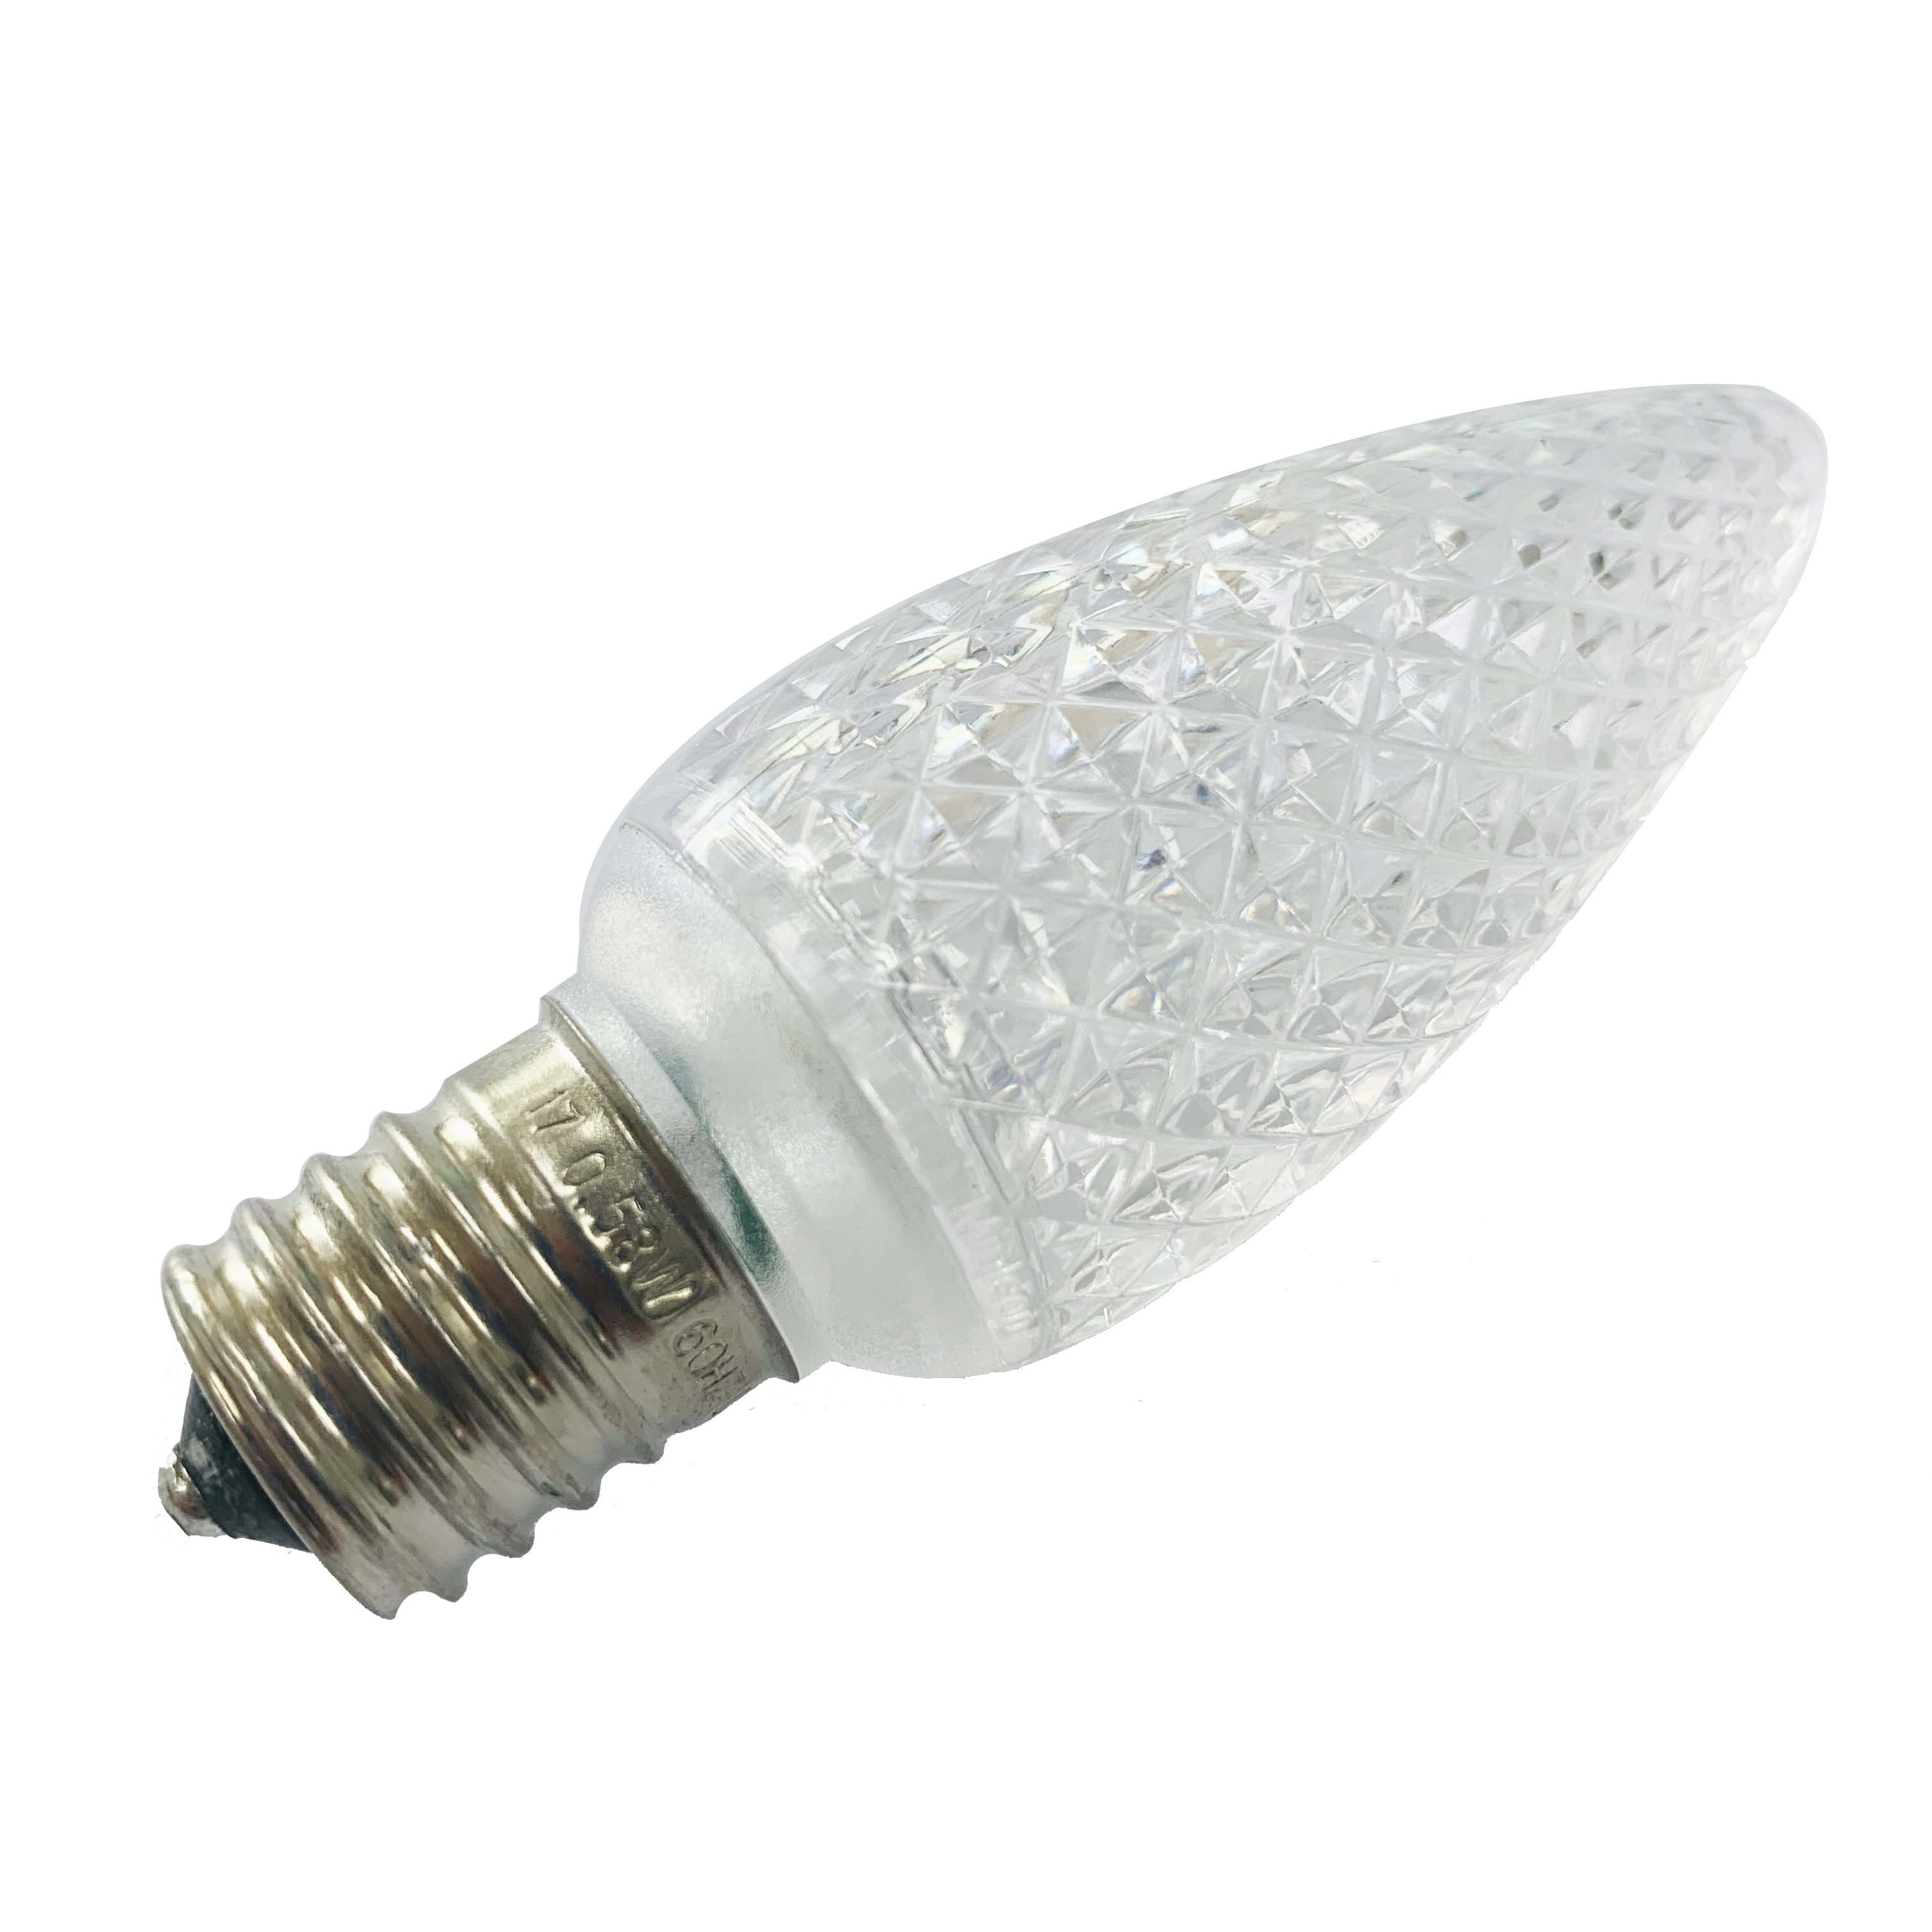 China Led C9 Replacement String Lights Bulb For Decoration China Replacement Bulb Mini Bulb